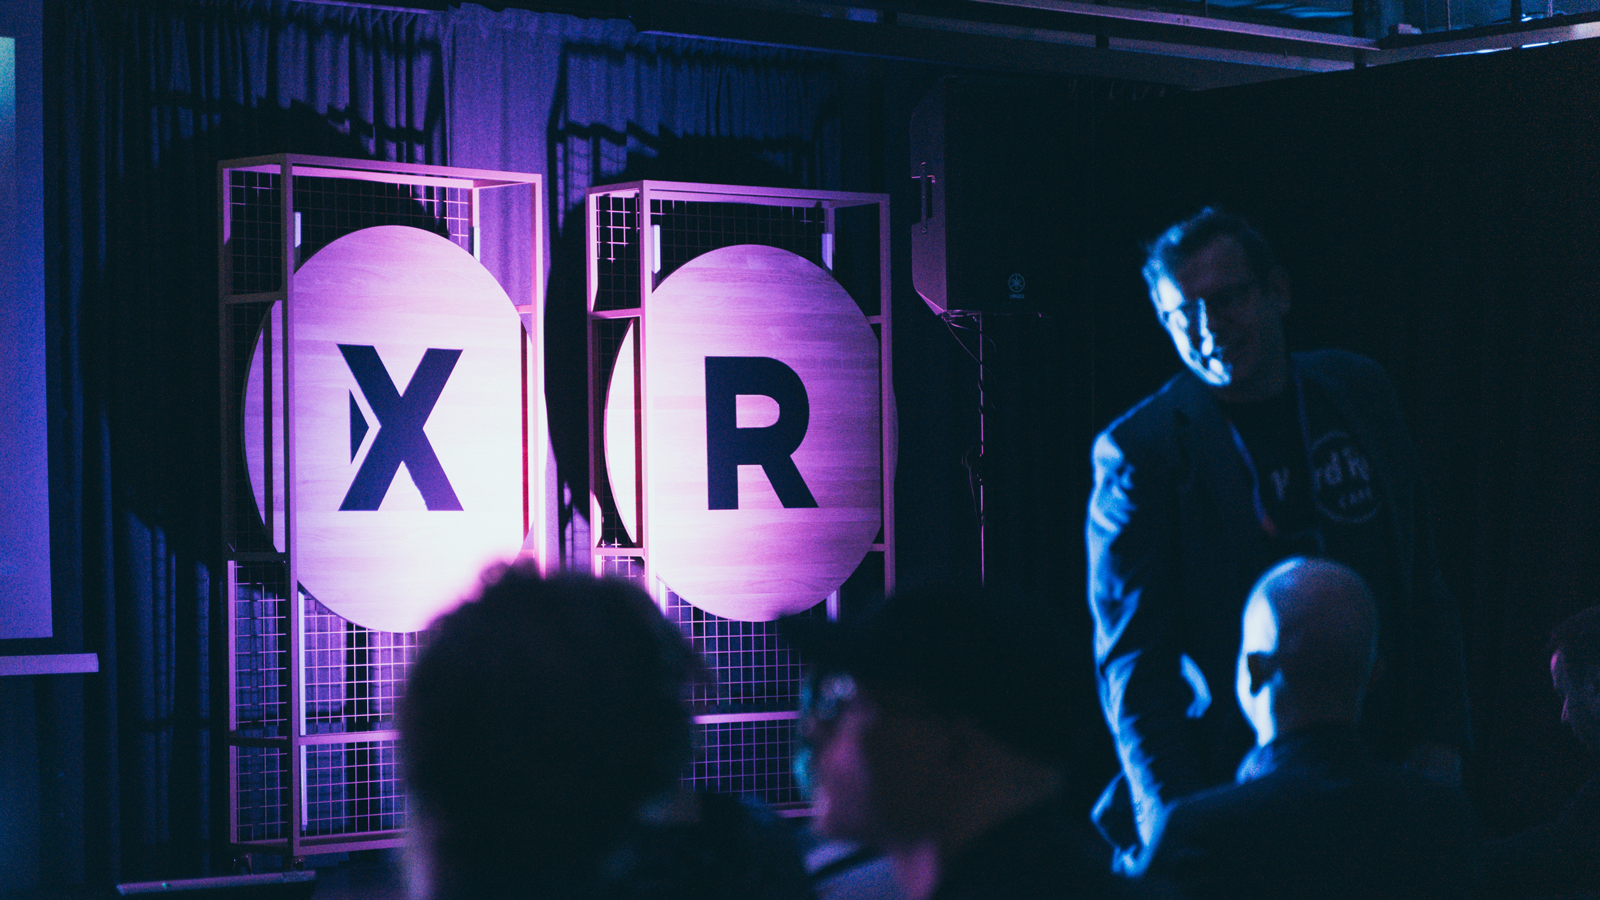 Purple-tinted event space with the letters X R visible in the background.